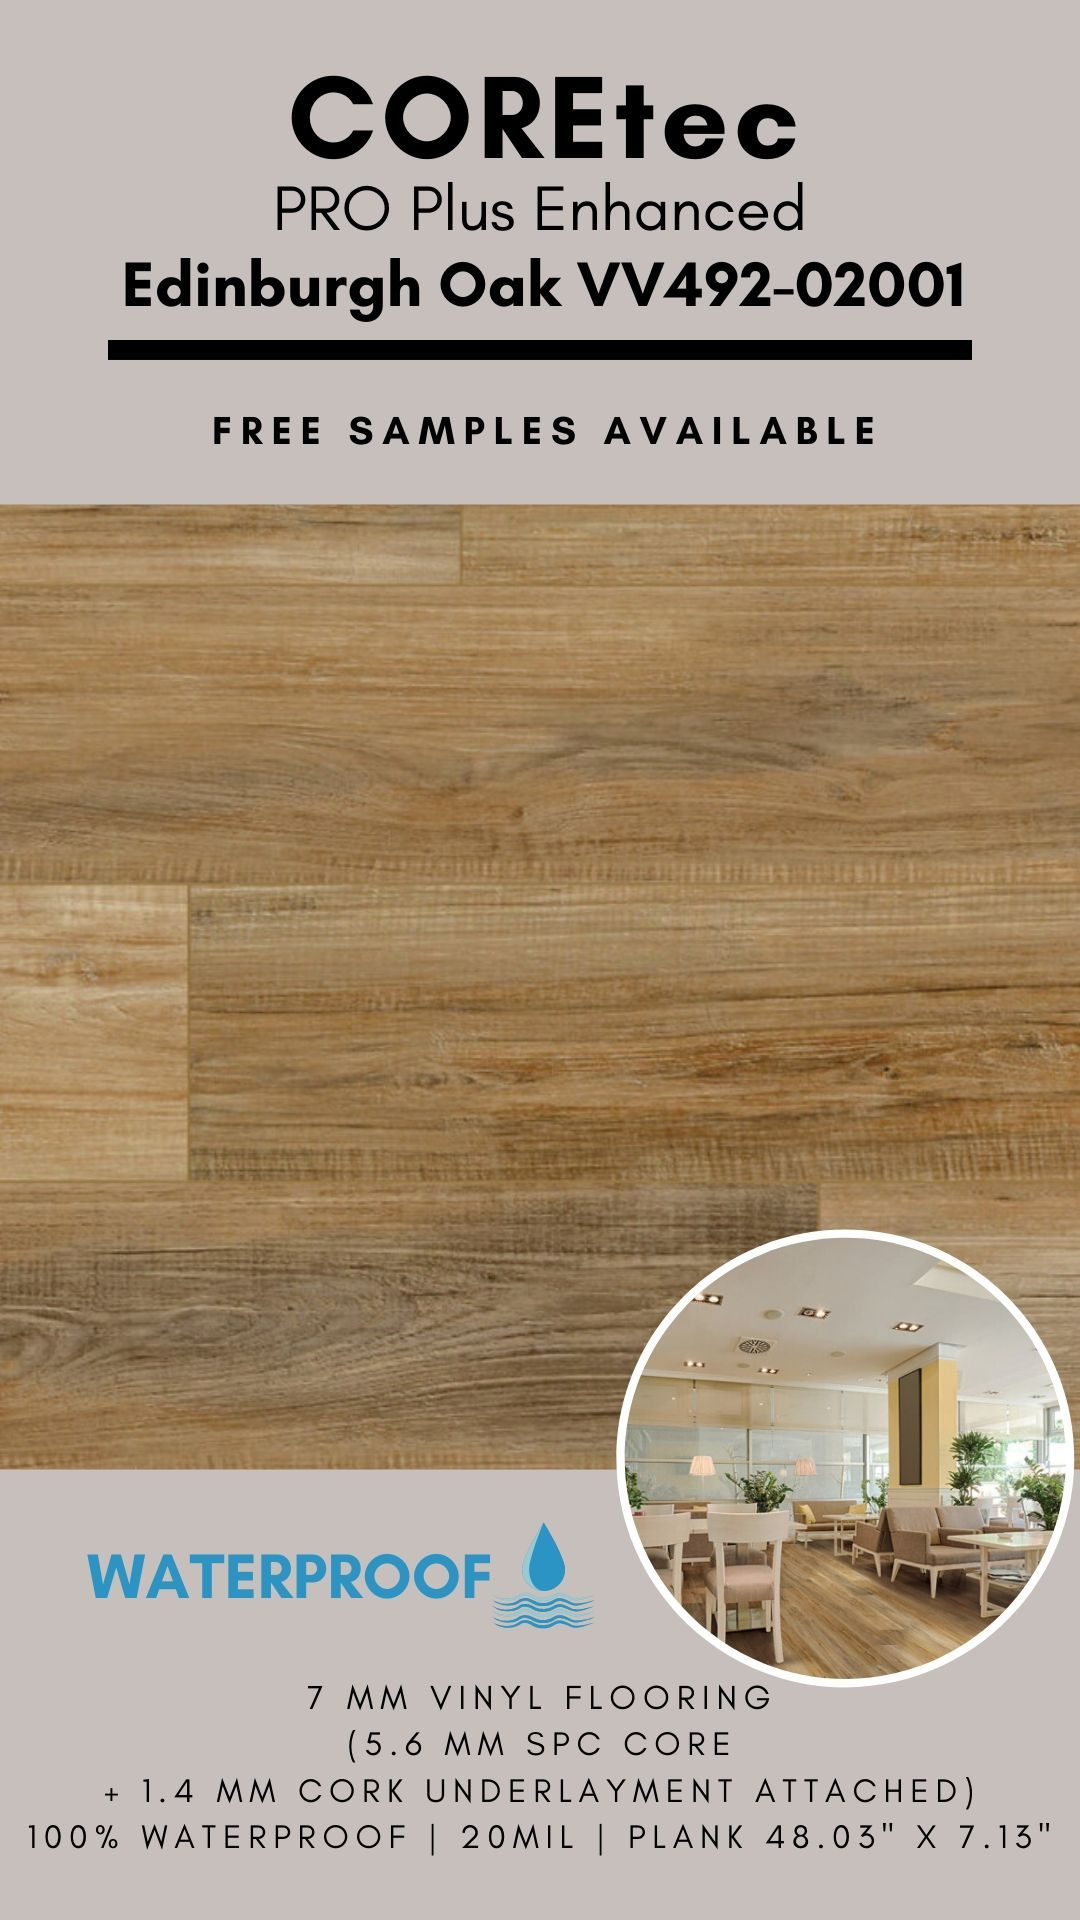 Coretec Pro Plus Enhanced Edinburgh Oak Vinyl Flooring In 2020 Vinyl Flooring Coretec Flooring